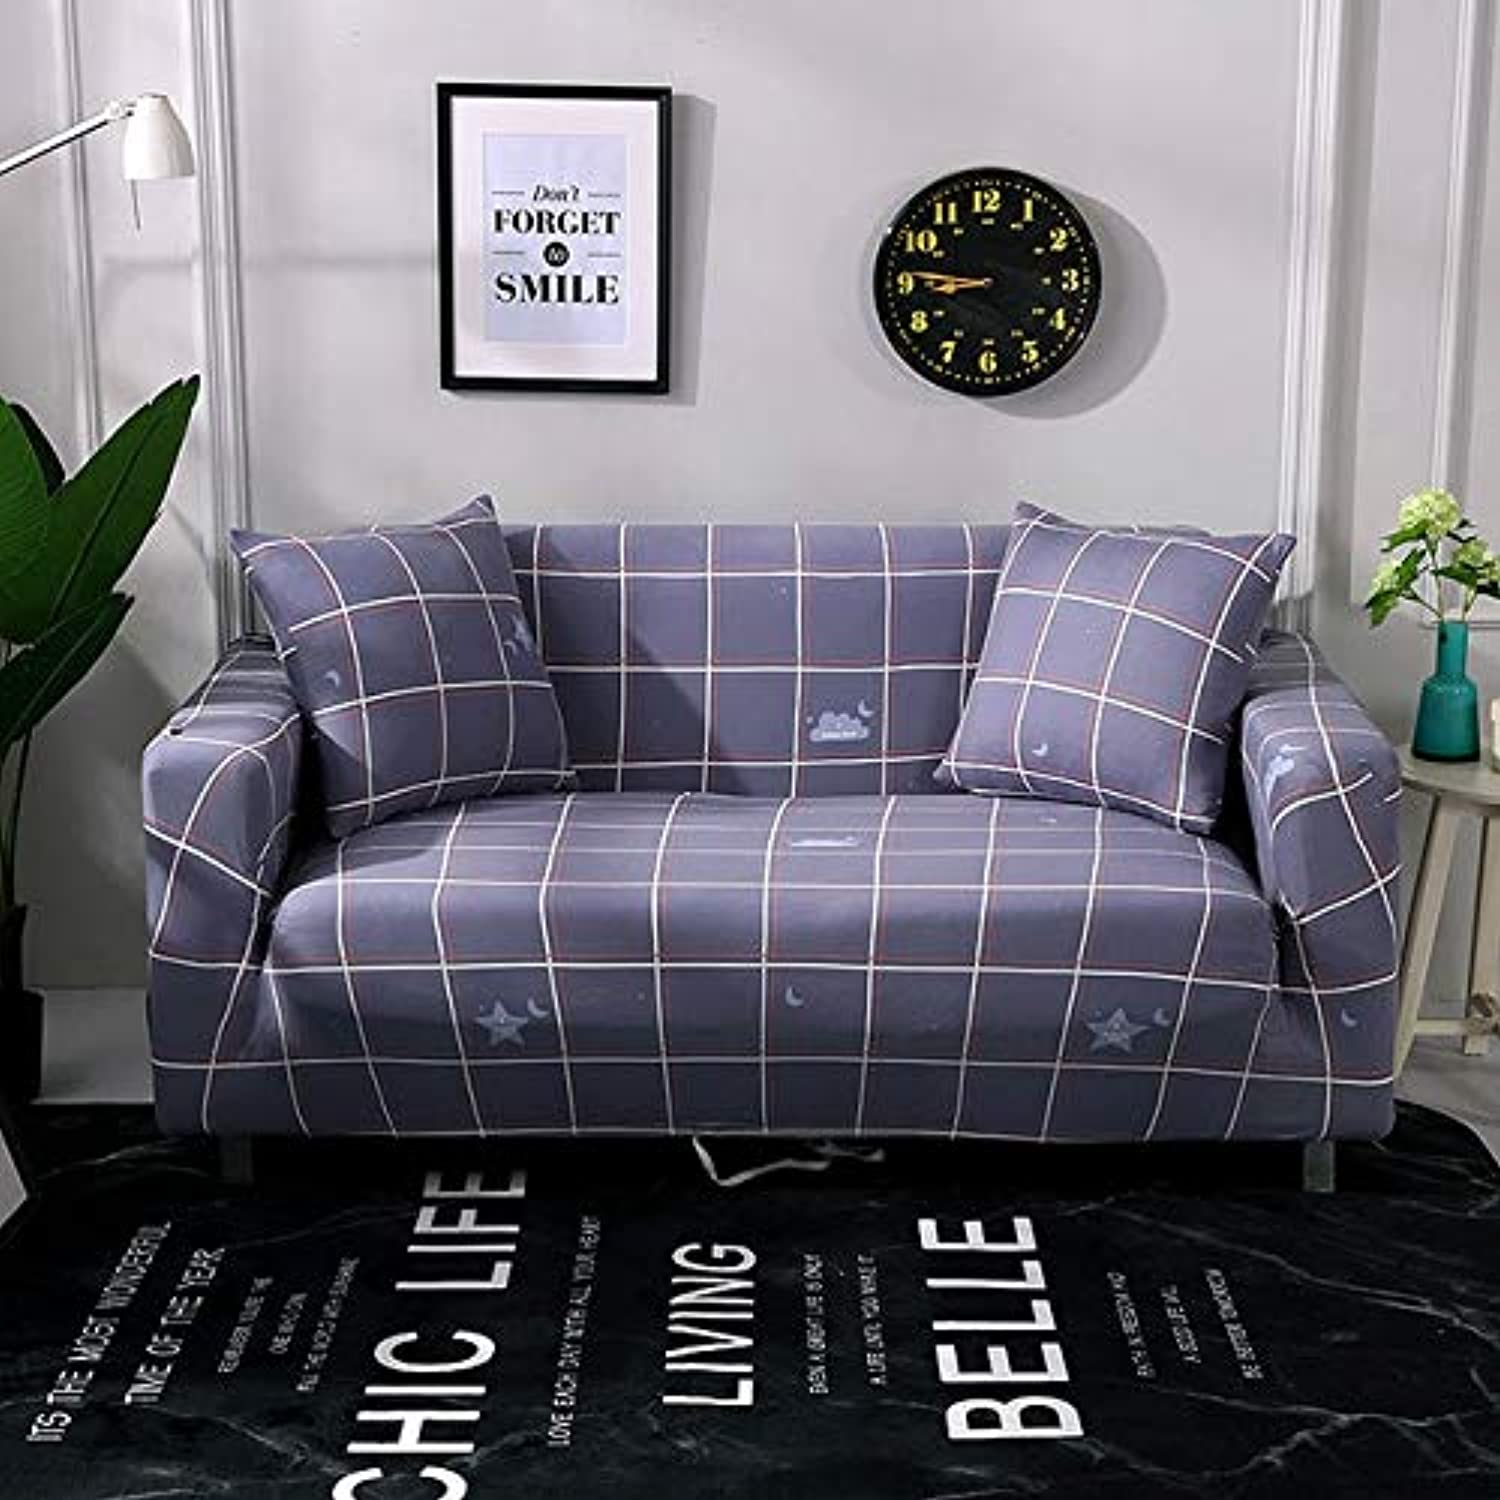 European Style Sofa Cover Sofa-slipcovers Tight Elastic Sofa Towel Wrap All-Inclusive Slip-Resistant Couch Cover 1 2 3 4-seater   24, Two-seat